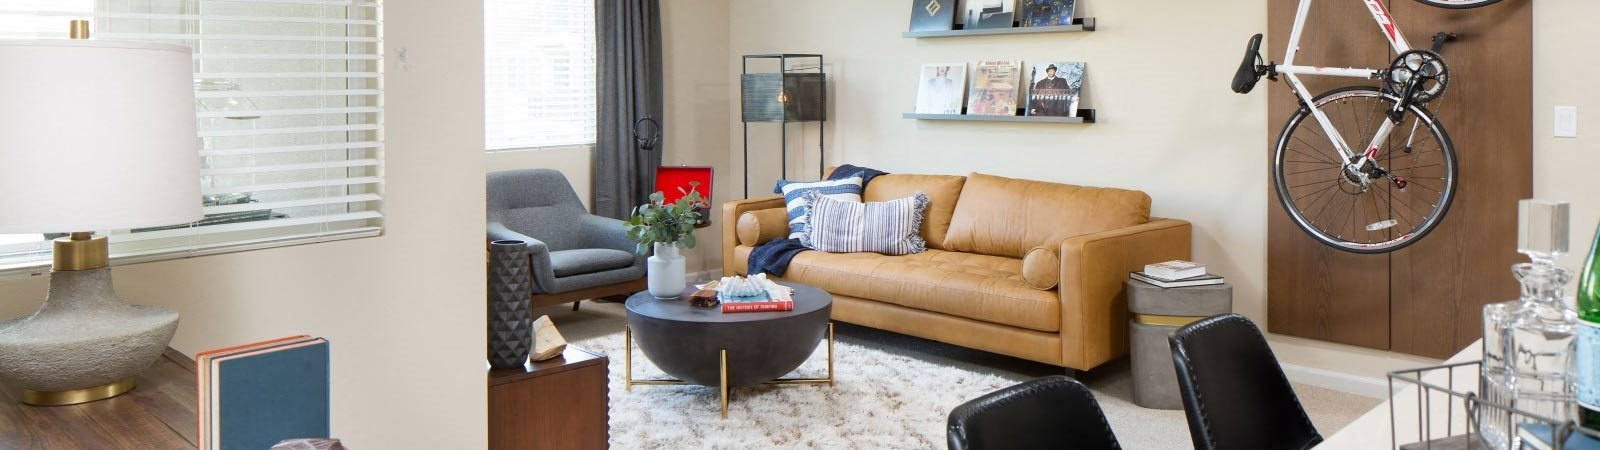 banner image of the living room at Valentia Apartments in La Habra, CA